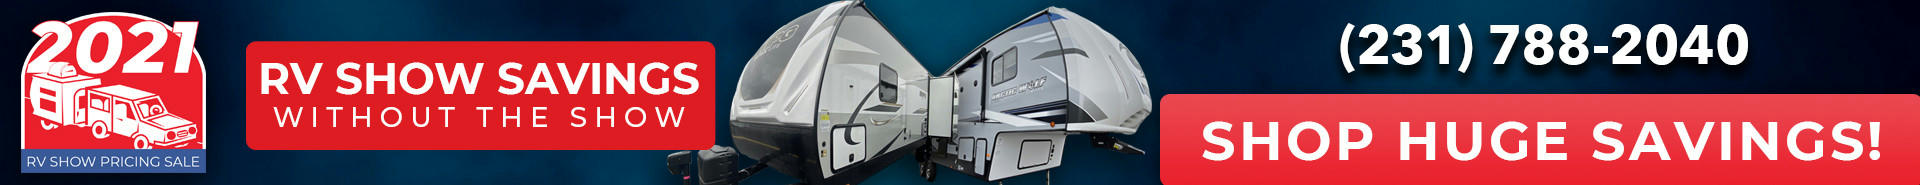 lsrv-rv-show-pricing-sale-pagebanner